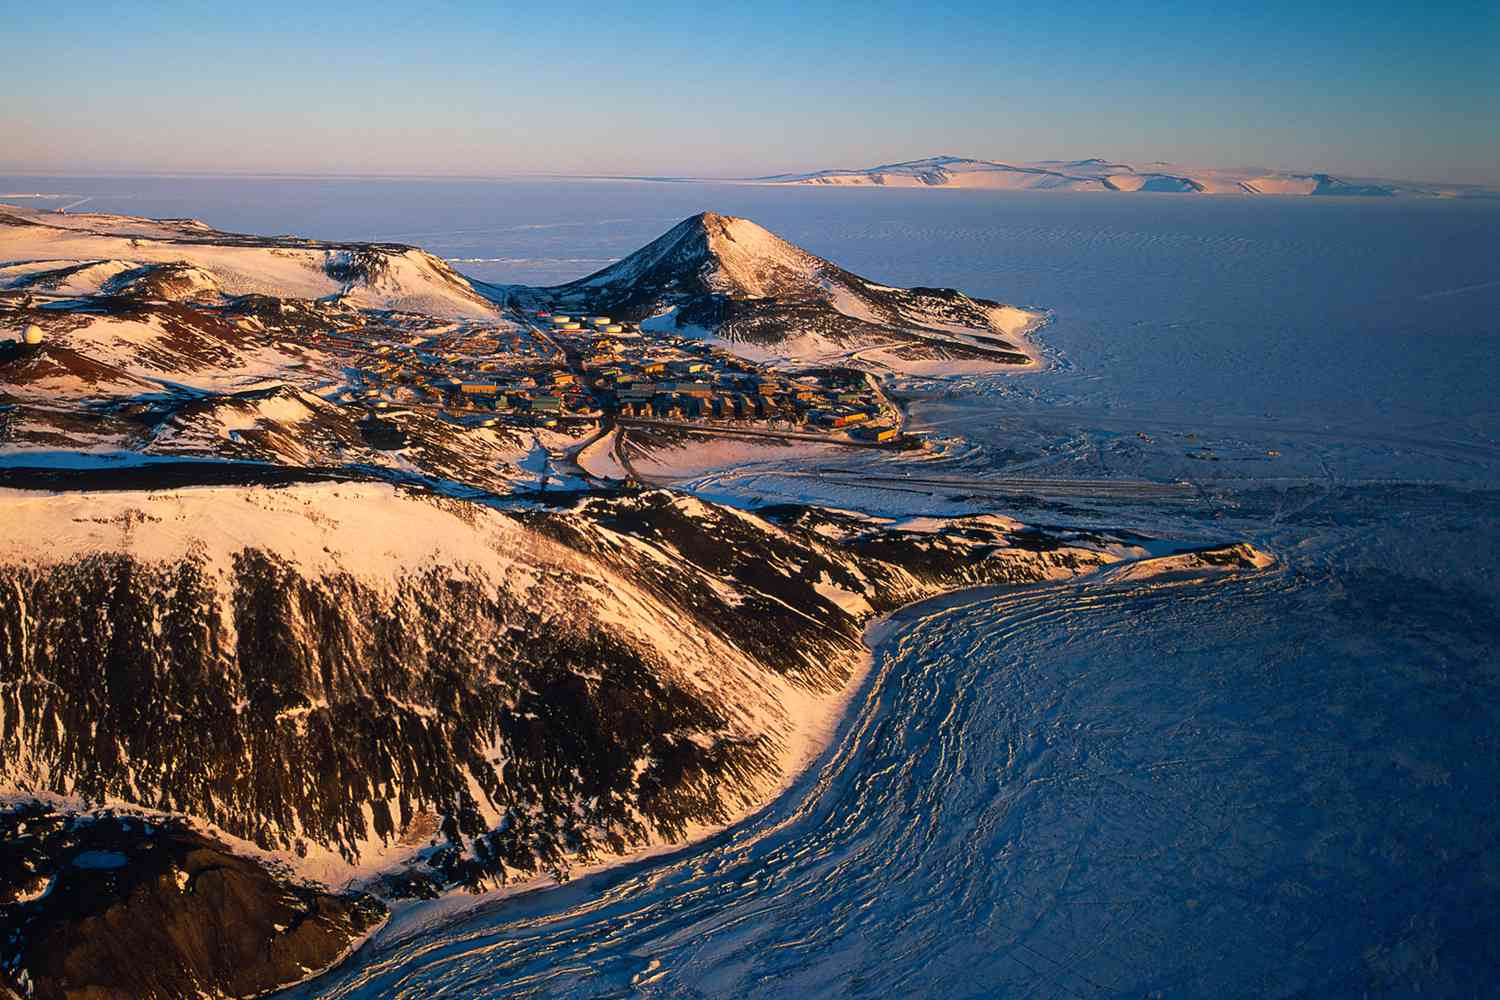 McMurdo Station on Ross Island in Antarctica surrounded by the Southern Ocean.